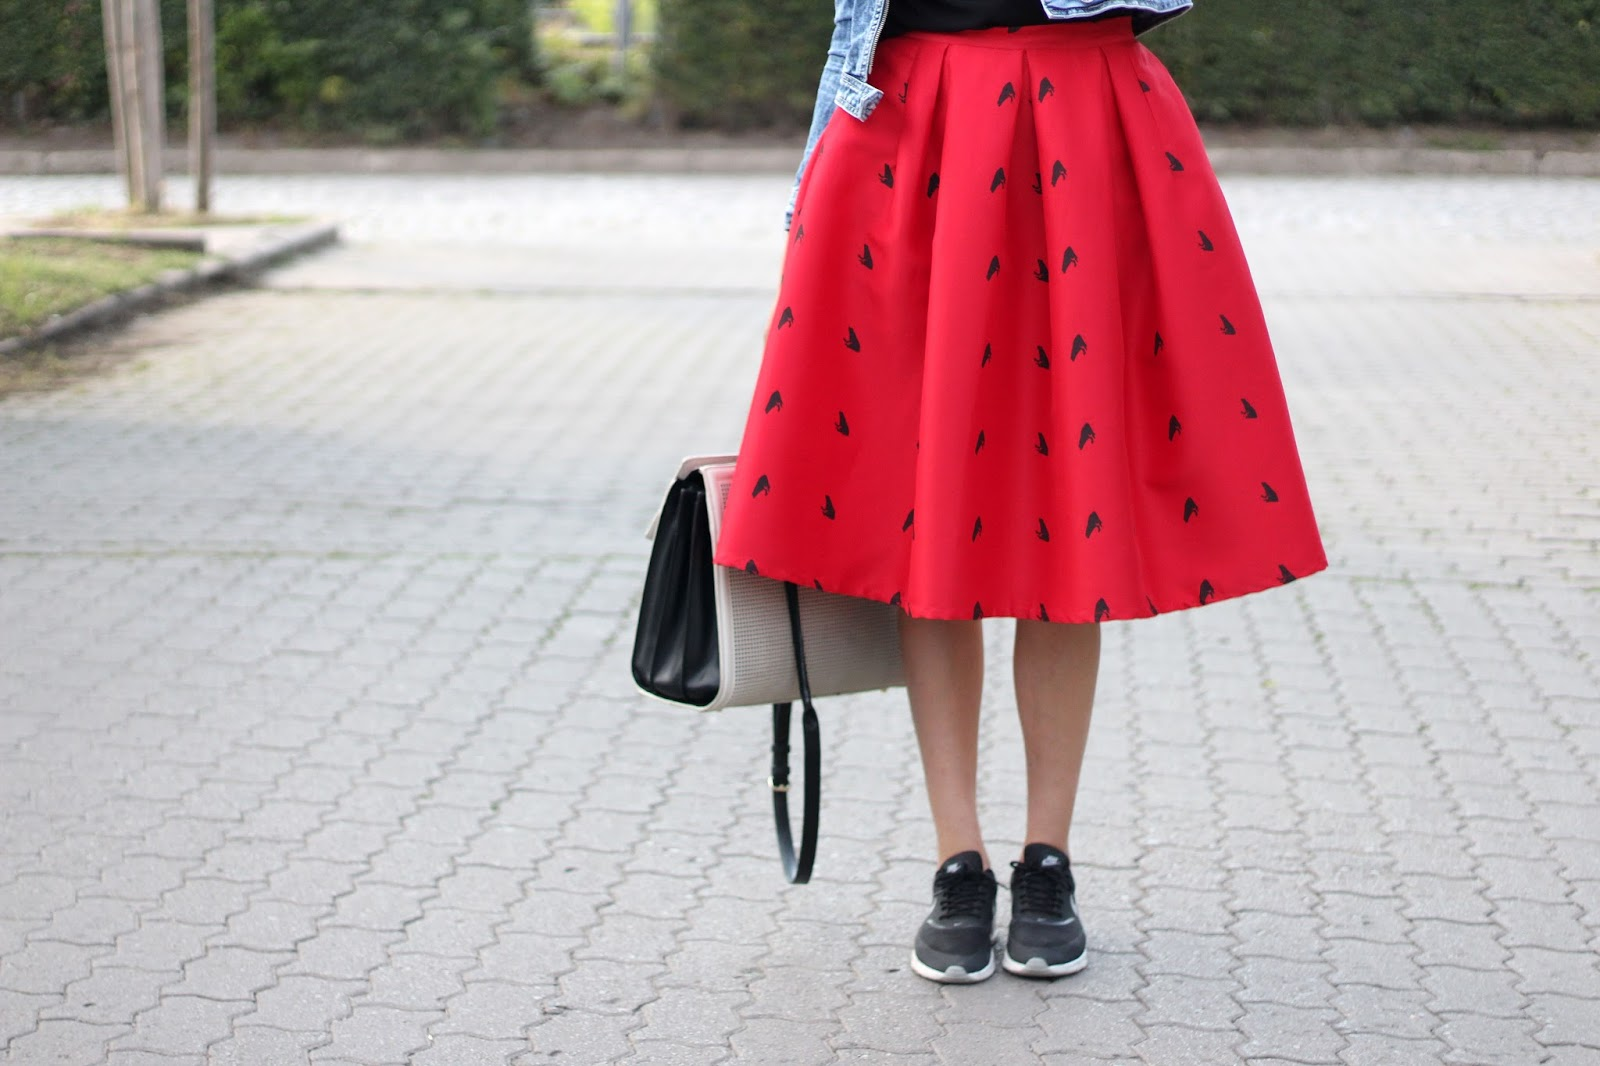 red midi skirt by Romwe on www.quitealooker.com